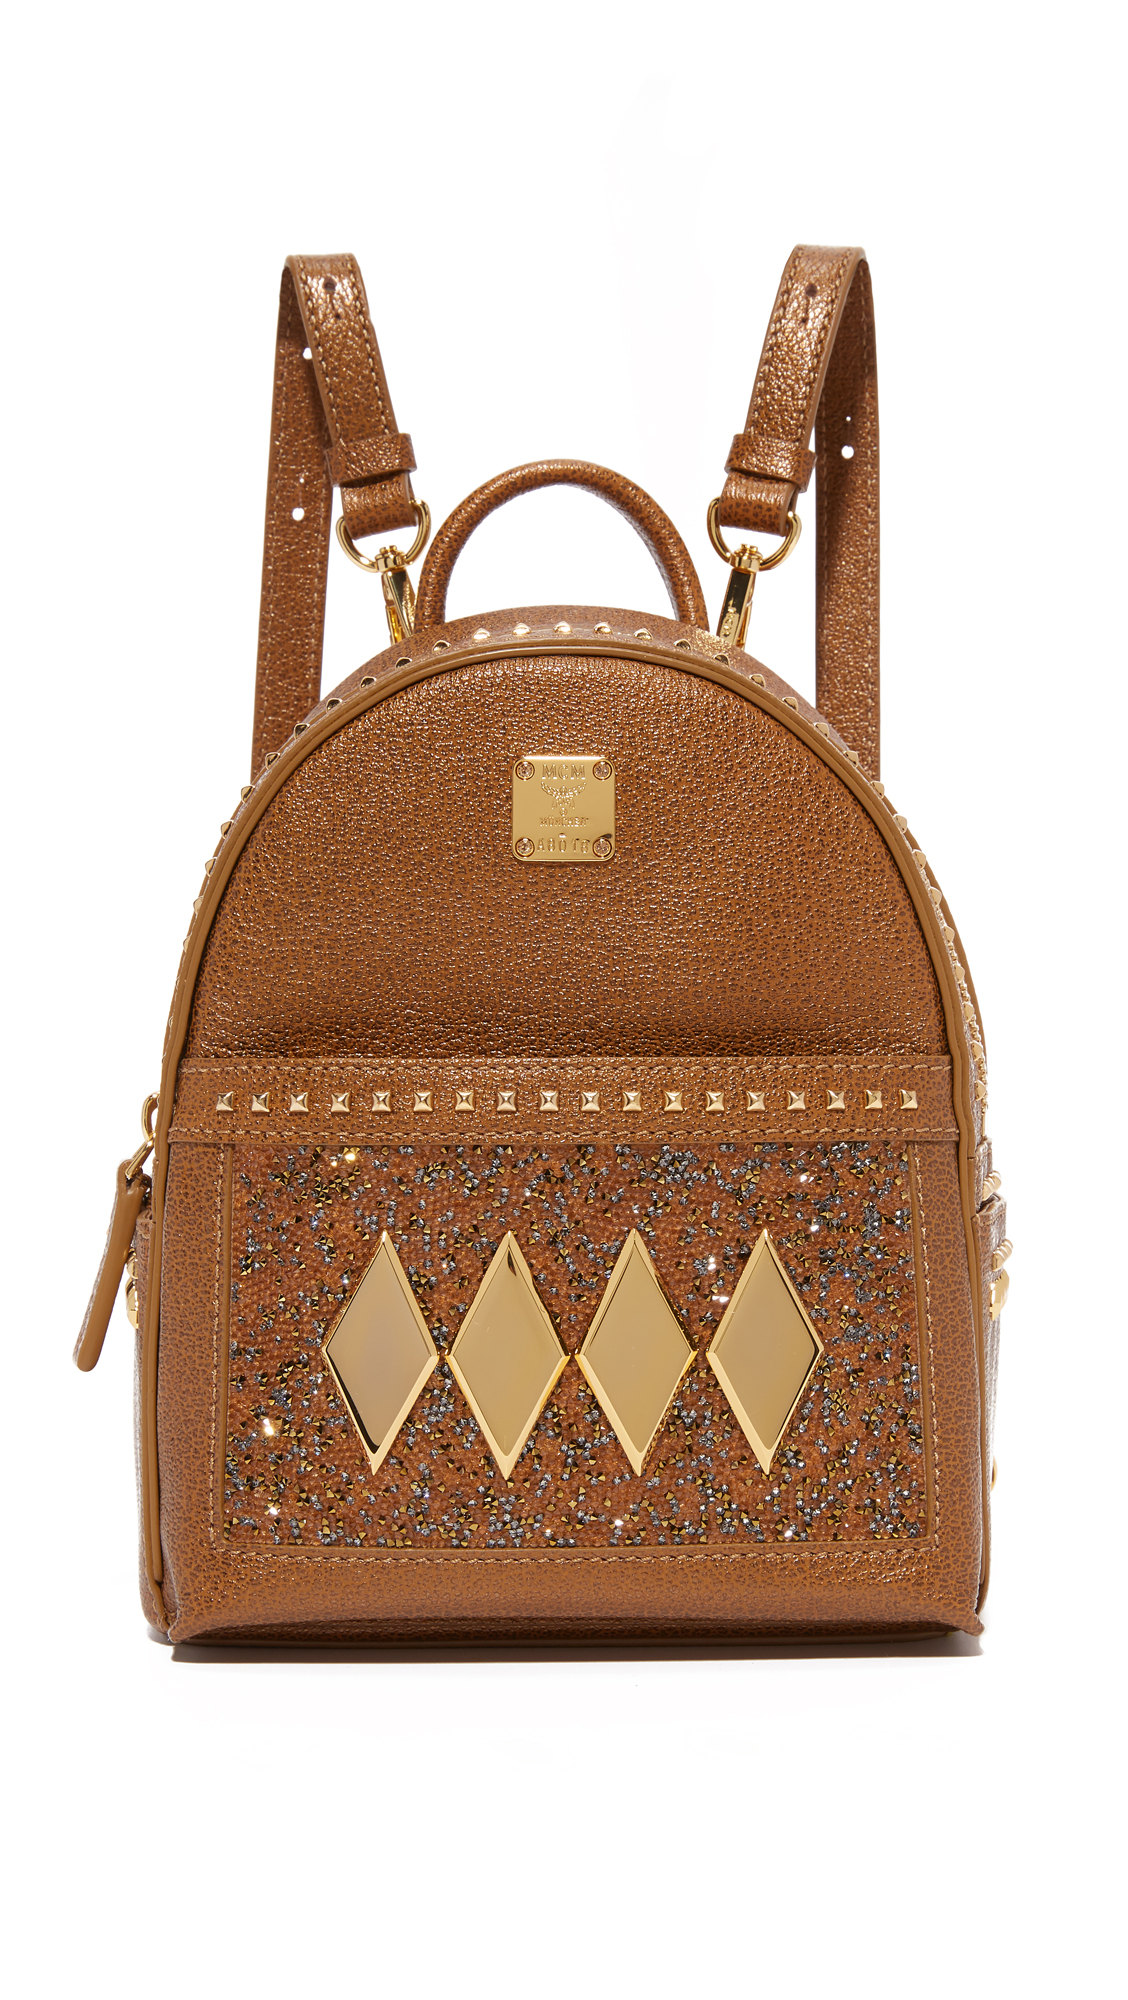 This petite MCM backpack is embellished with rows of polished studs, sparkles, and the brand's logo plate. A zip front pocket and patch side pockets provide extra storage. The top zip opens to a lined interior